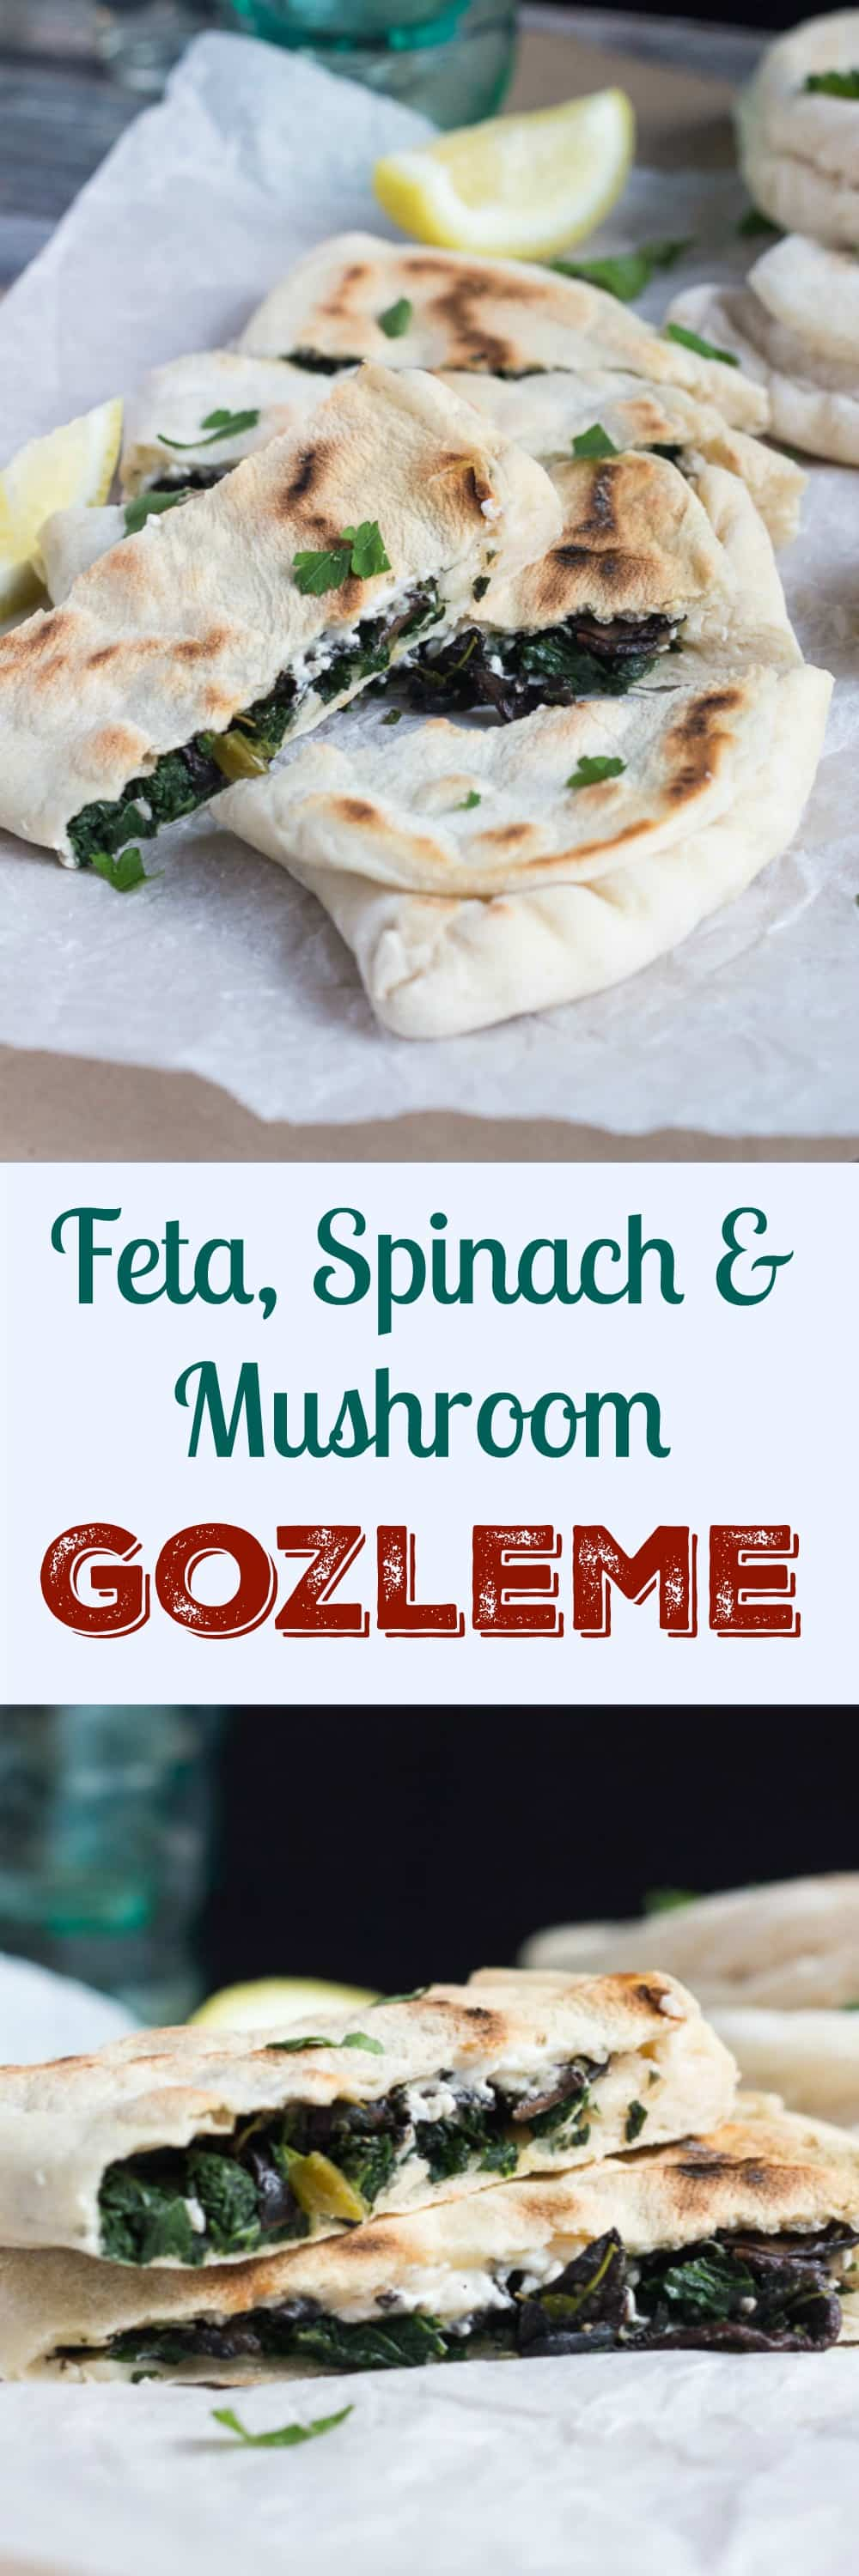 Feta, Spinach and Mushroom Gozleme. With a few basics on hand, these come together in five minutes and are perfect for a quick lunch or dinner.